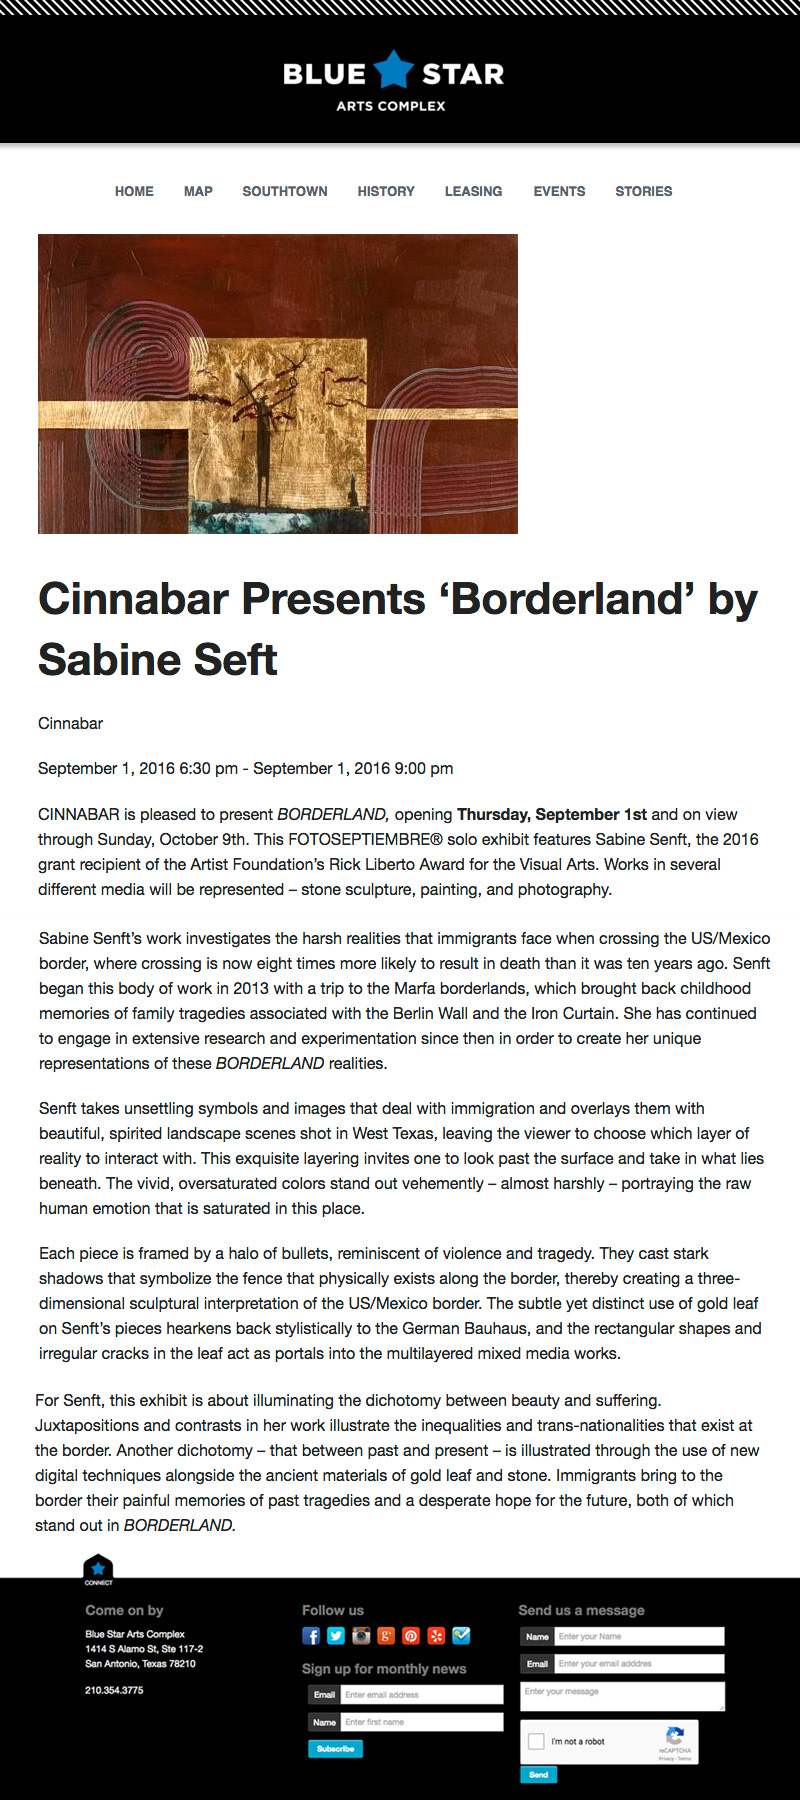 2016-FOTOSEPTIEMBRE-USA_Press-Archives_Sabine-Senft_Borderland-Exhibit_Cinnabar-Art-Gallery_Blue-Star-Arts-Complex-Web-Site